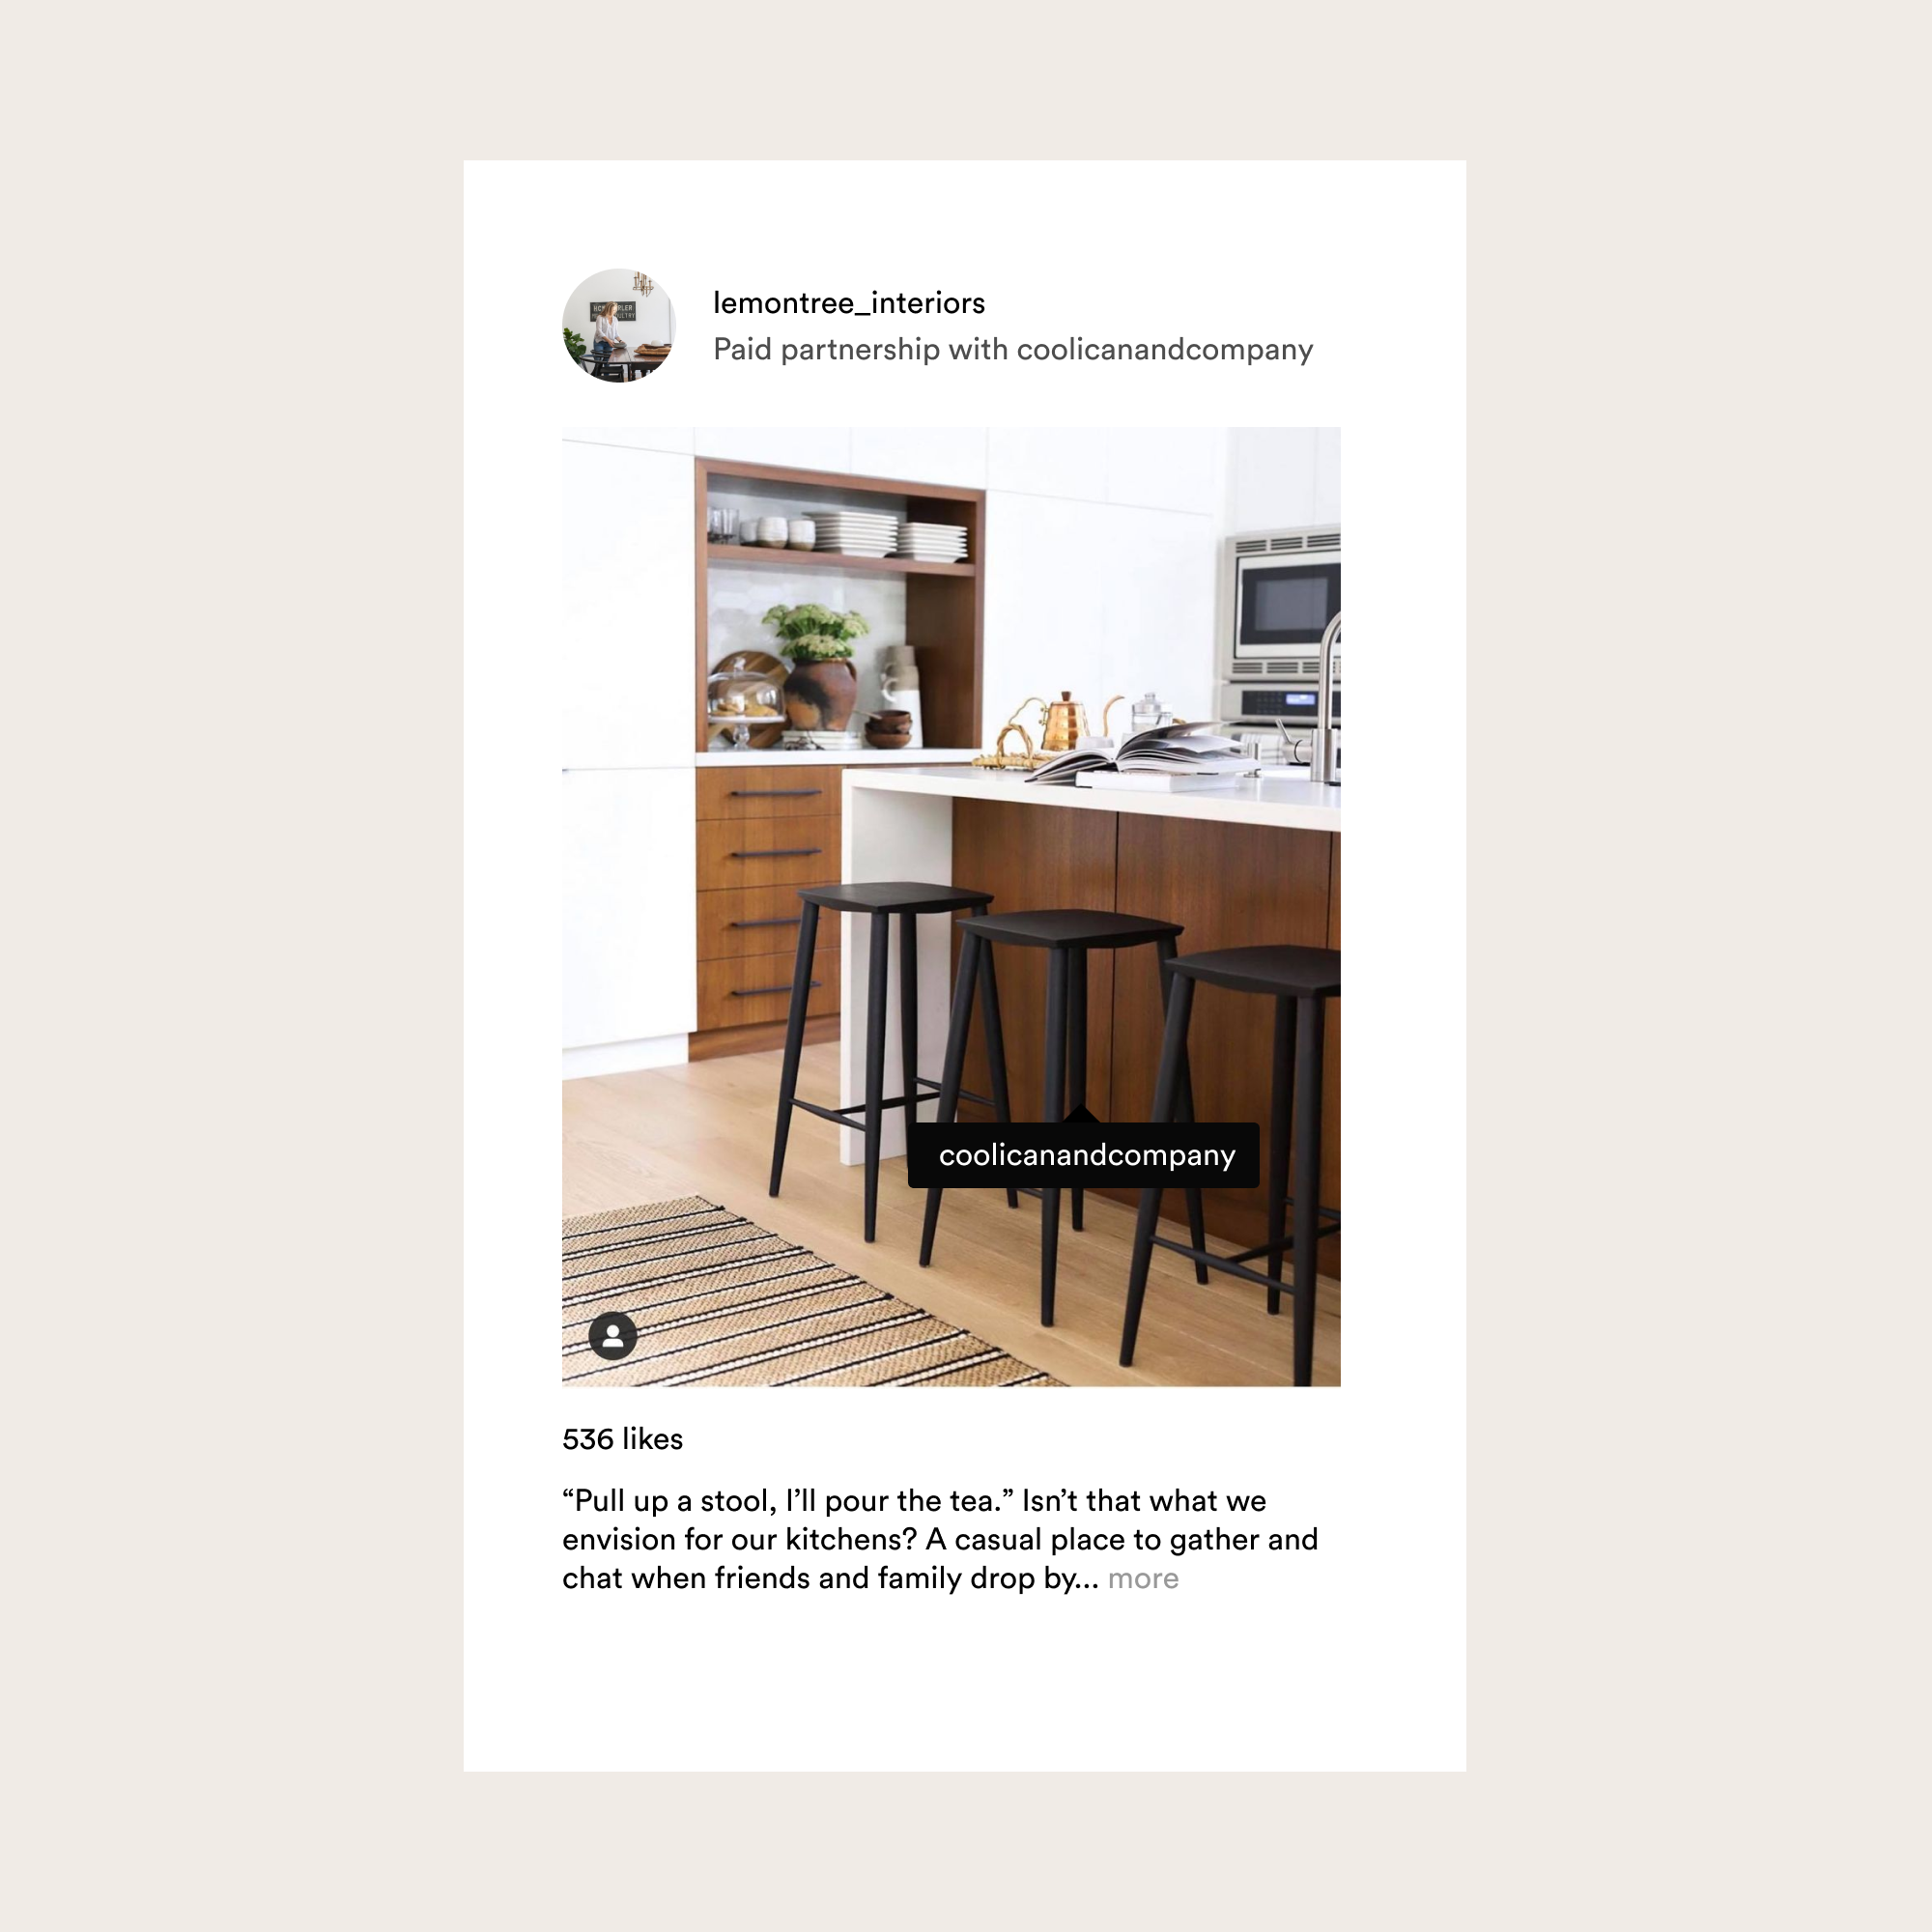 Instagram content created by brand ambassador